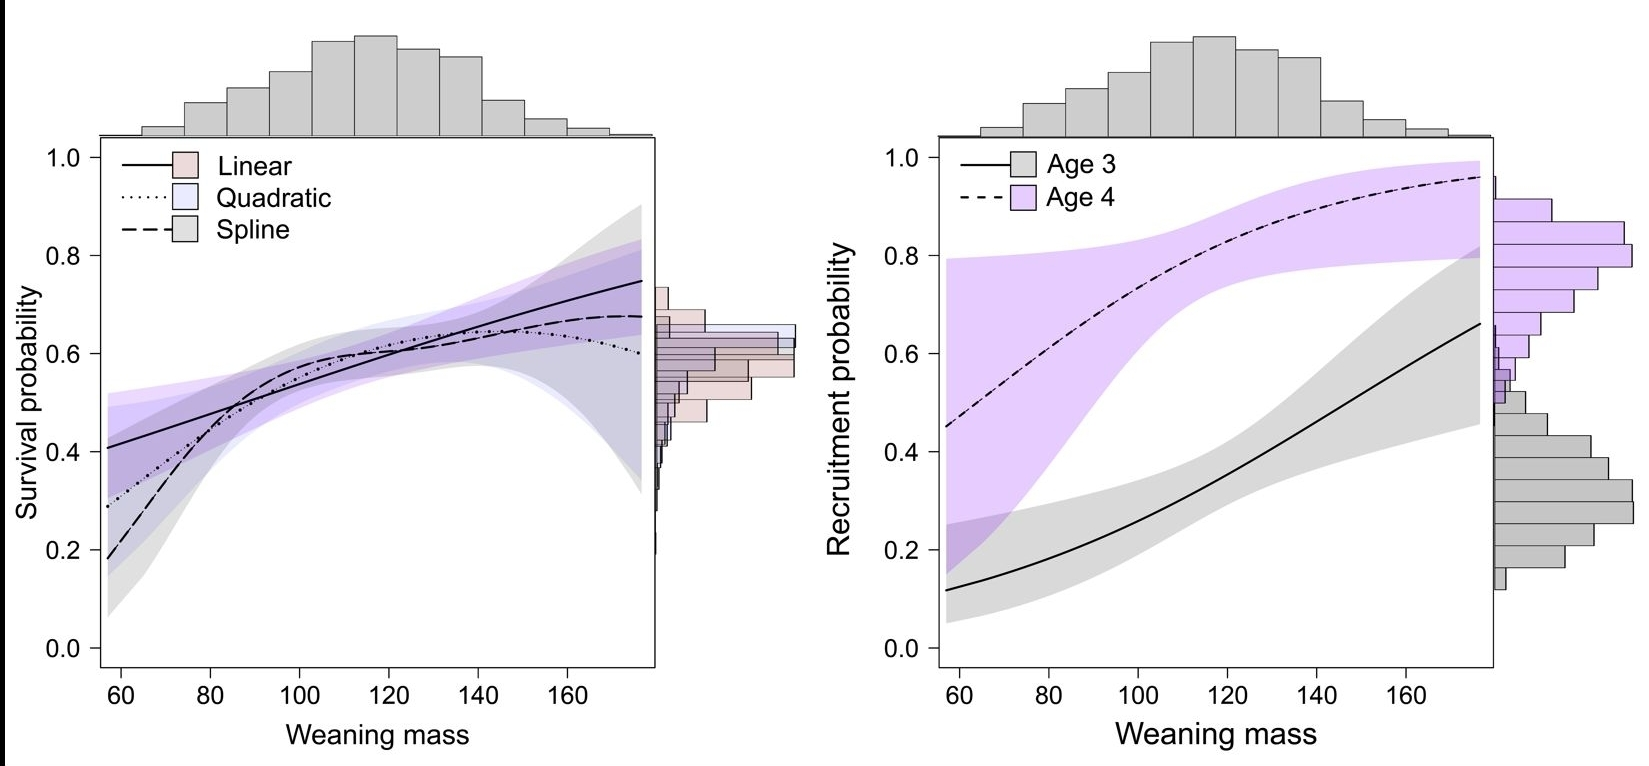 Weaning mass correlated positively with first-year survival (Figure left), but its influence was unimportant for survival of older pre-breeders and breeders. In contrast, a strong positive link persisted between weaning mass and the age of first reproduction, which typically occurs at ages three and four in female elephant seals (Figure right).